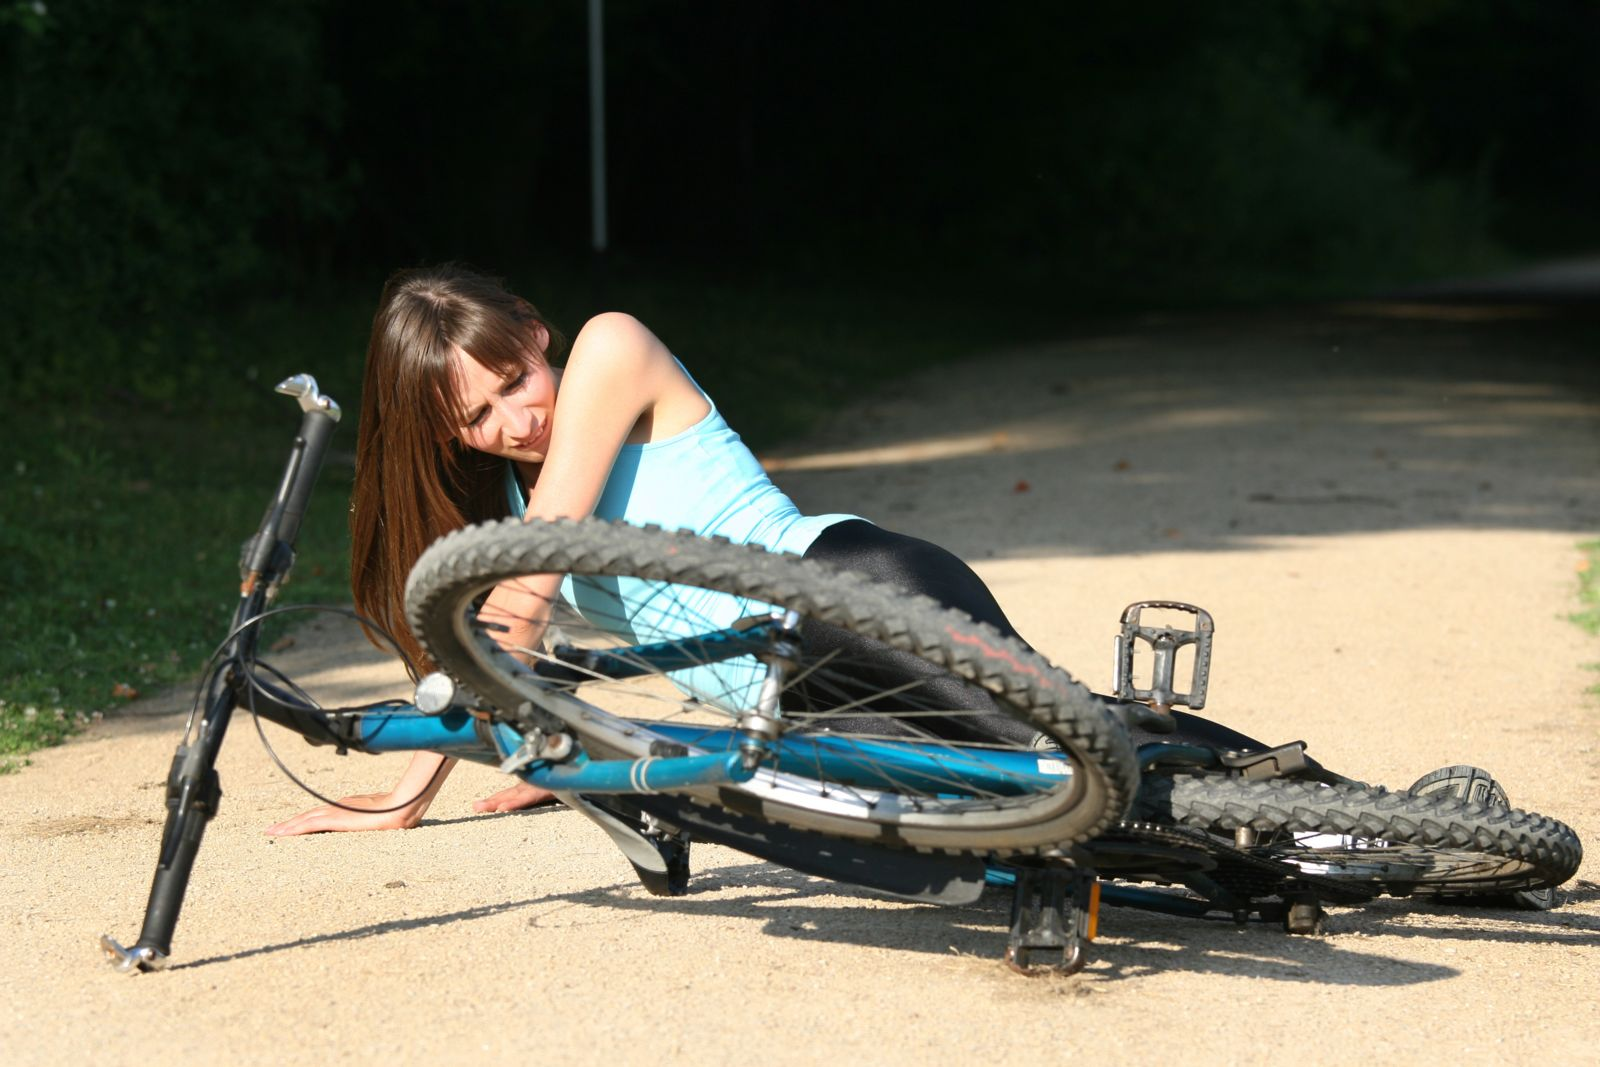 Should I hire a bicycle accident attorney